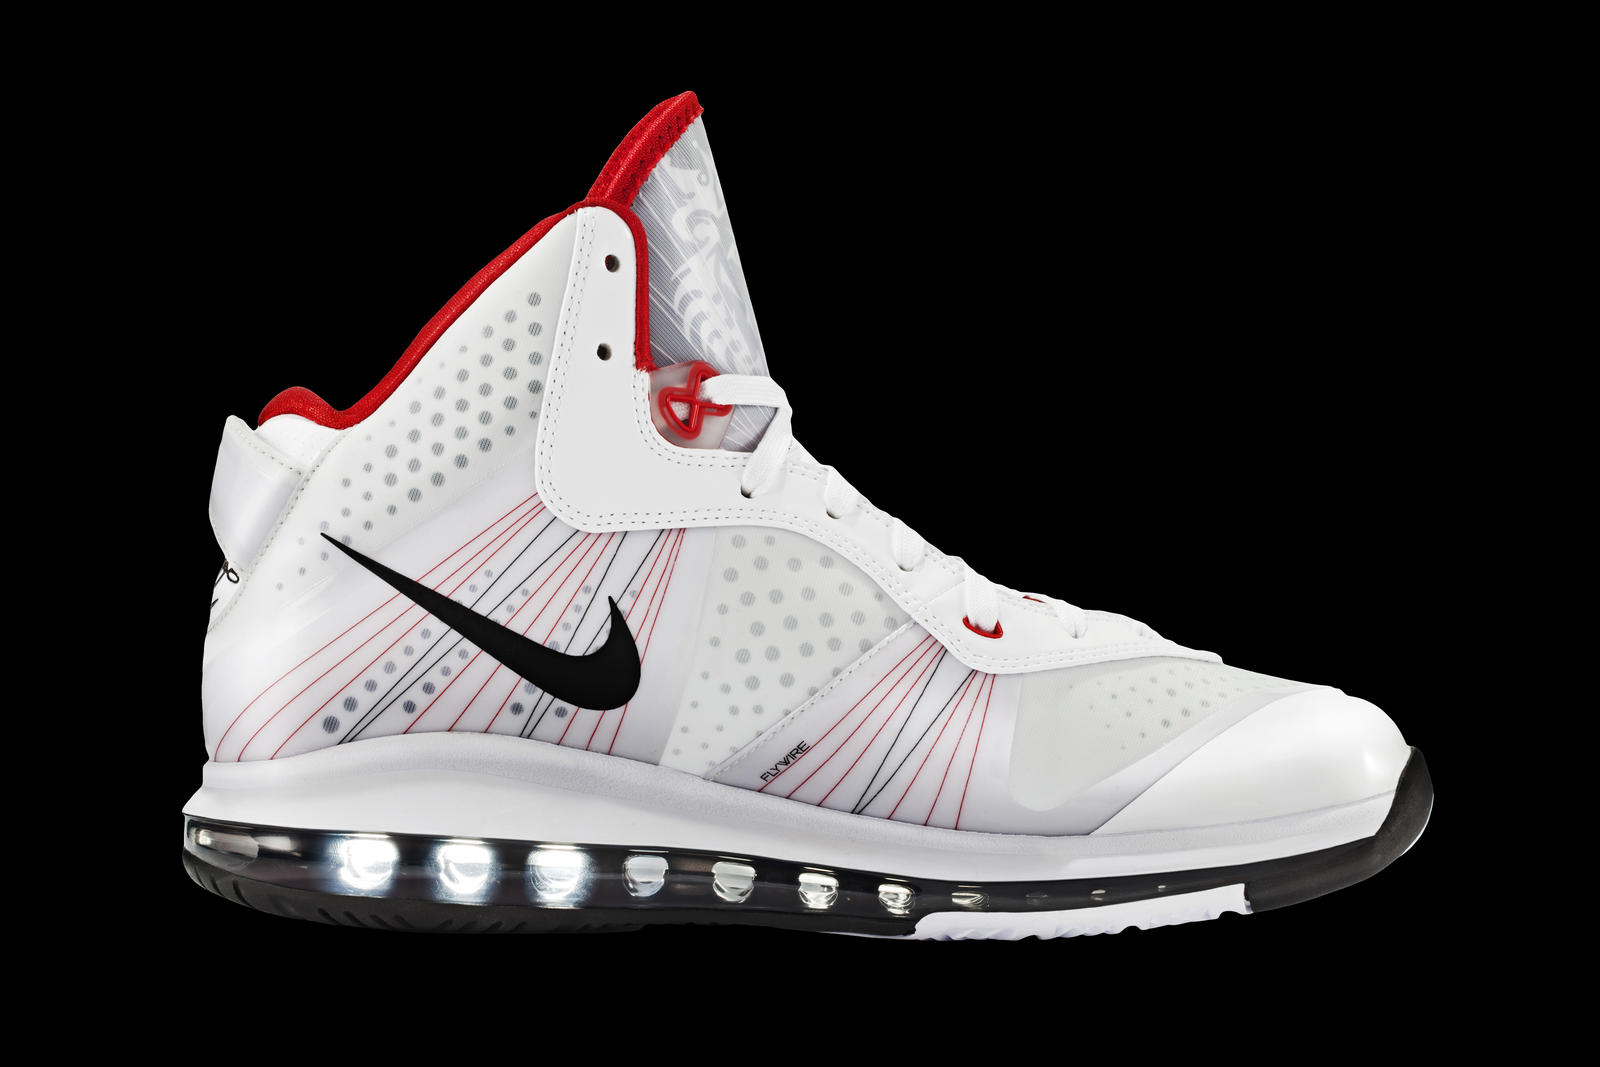 Labron James Golf Shoes